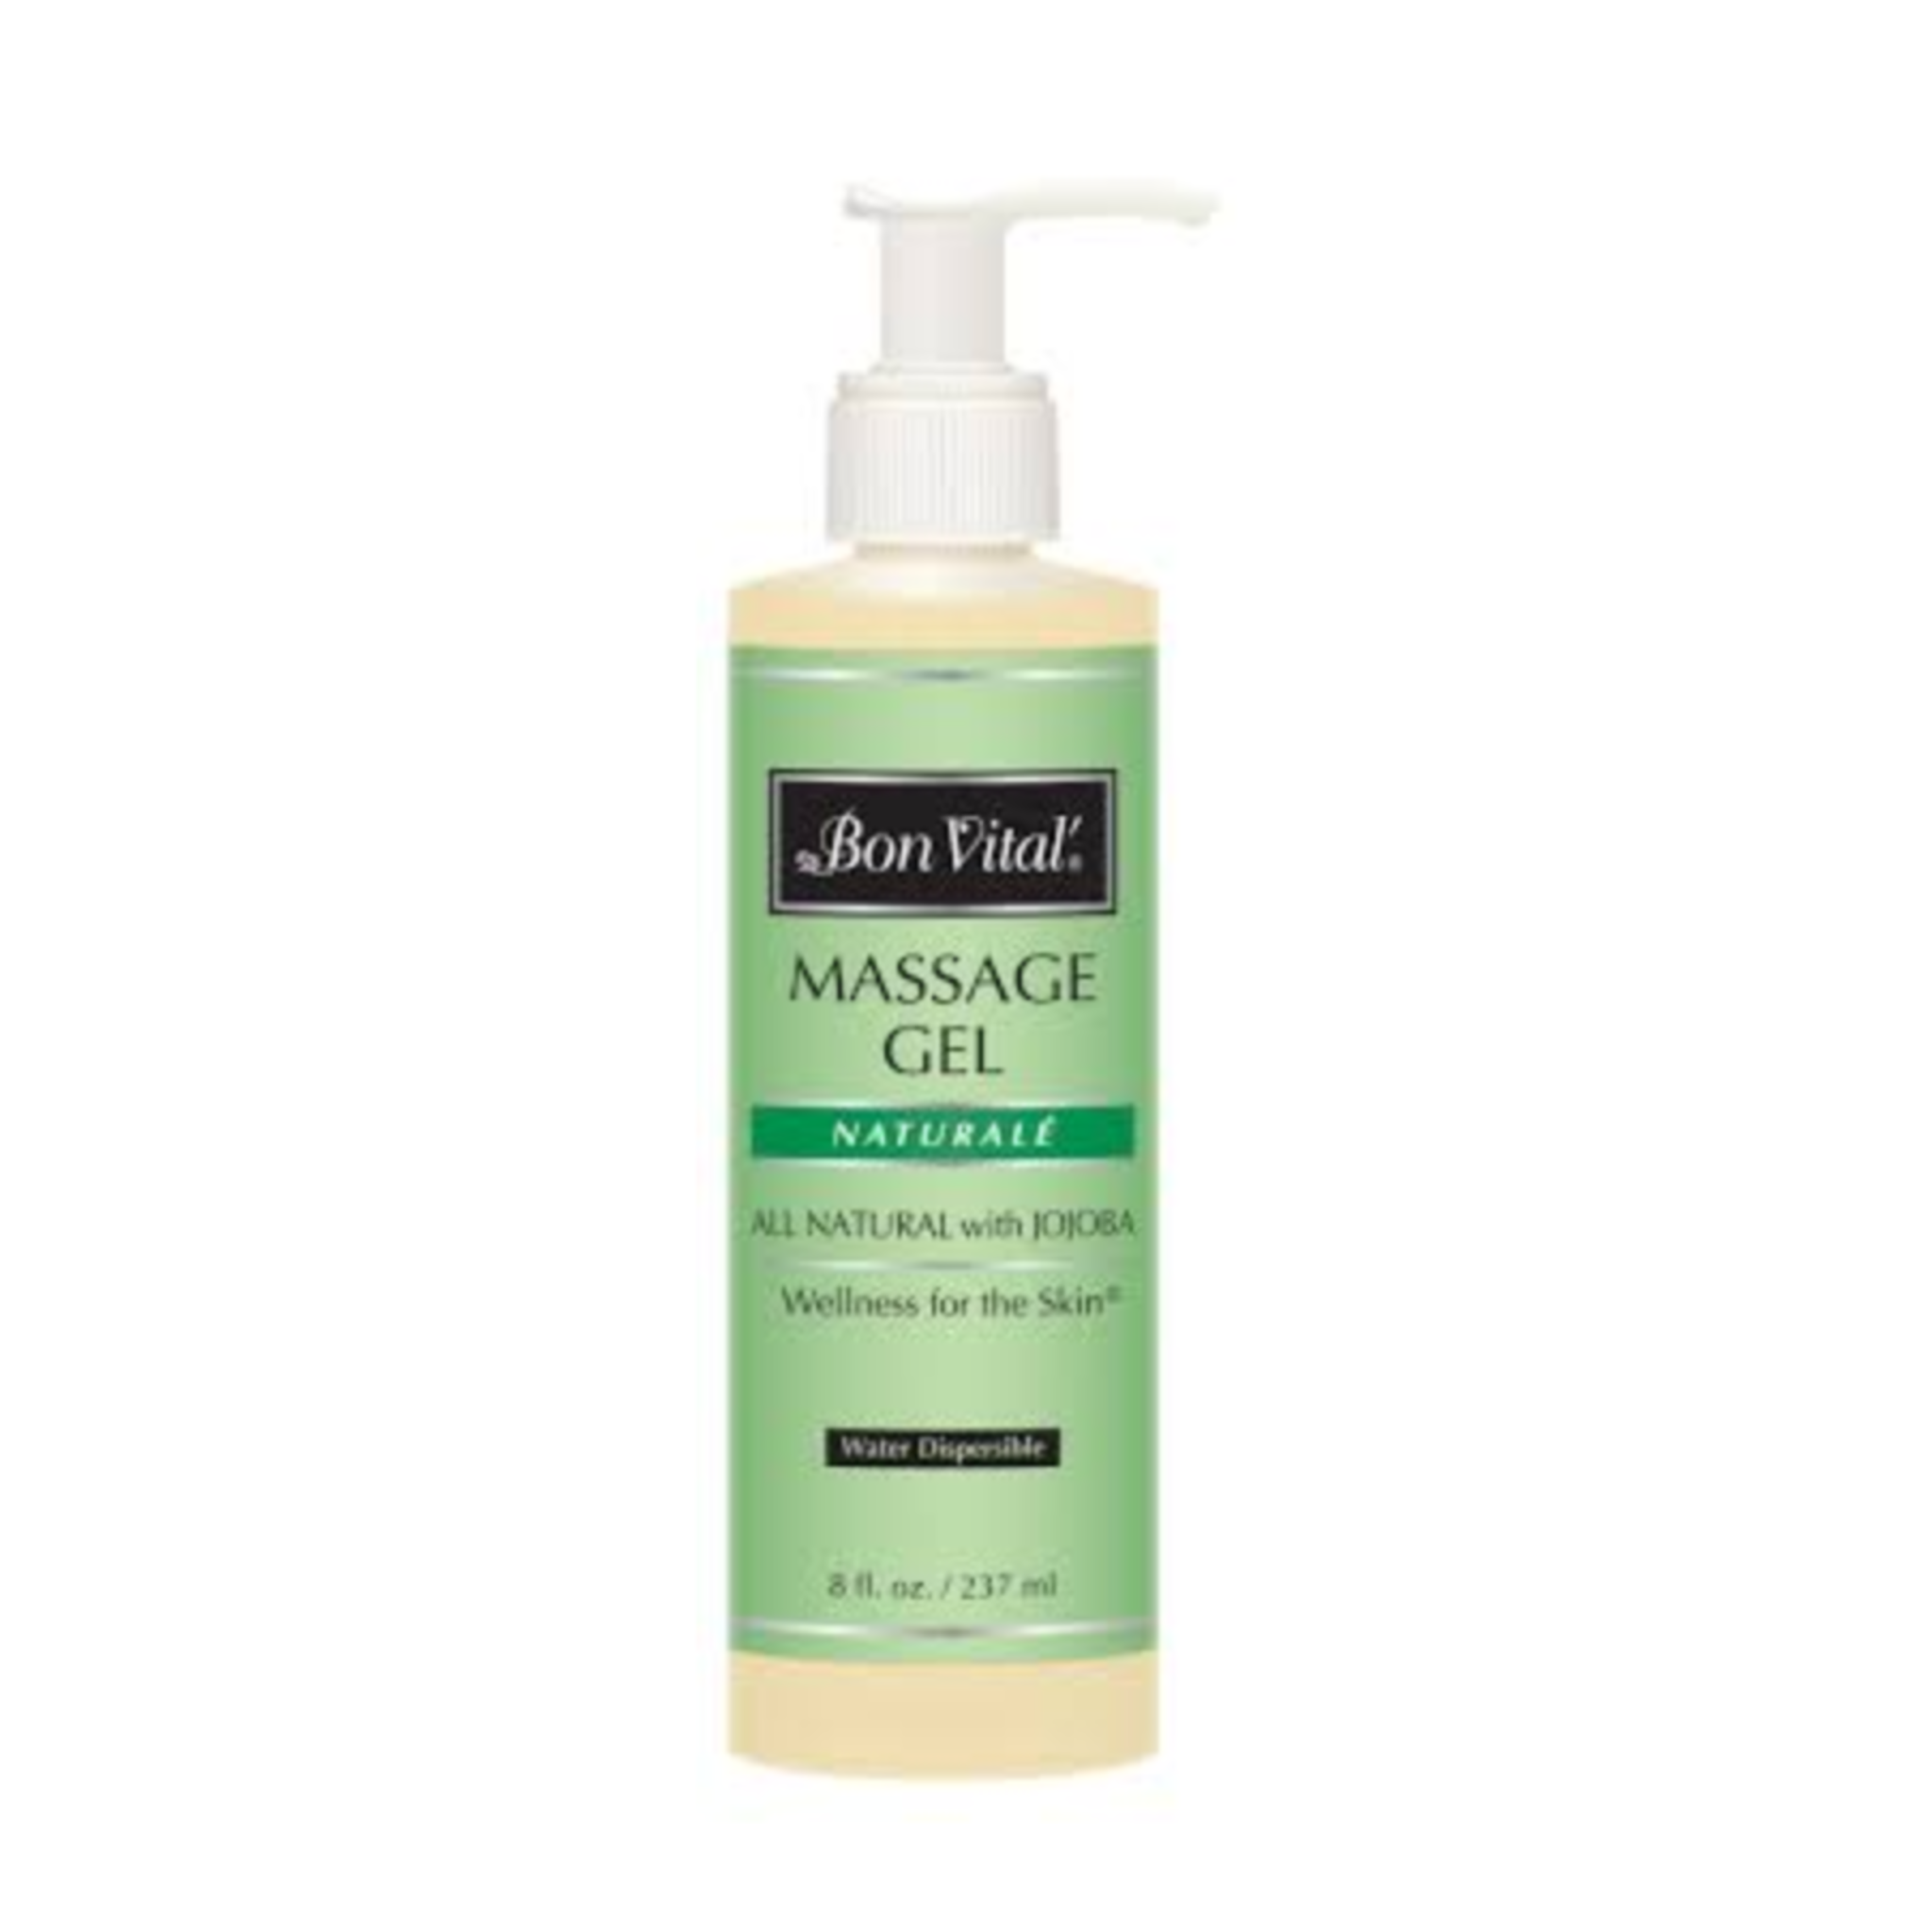 Bon Vital Massage Gel - Natural - Paraben Free